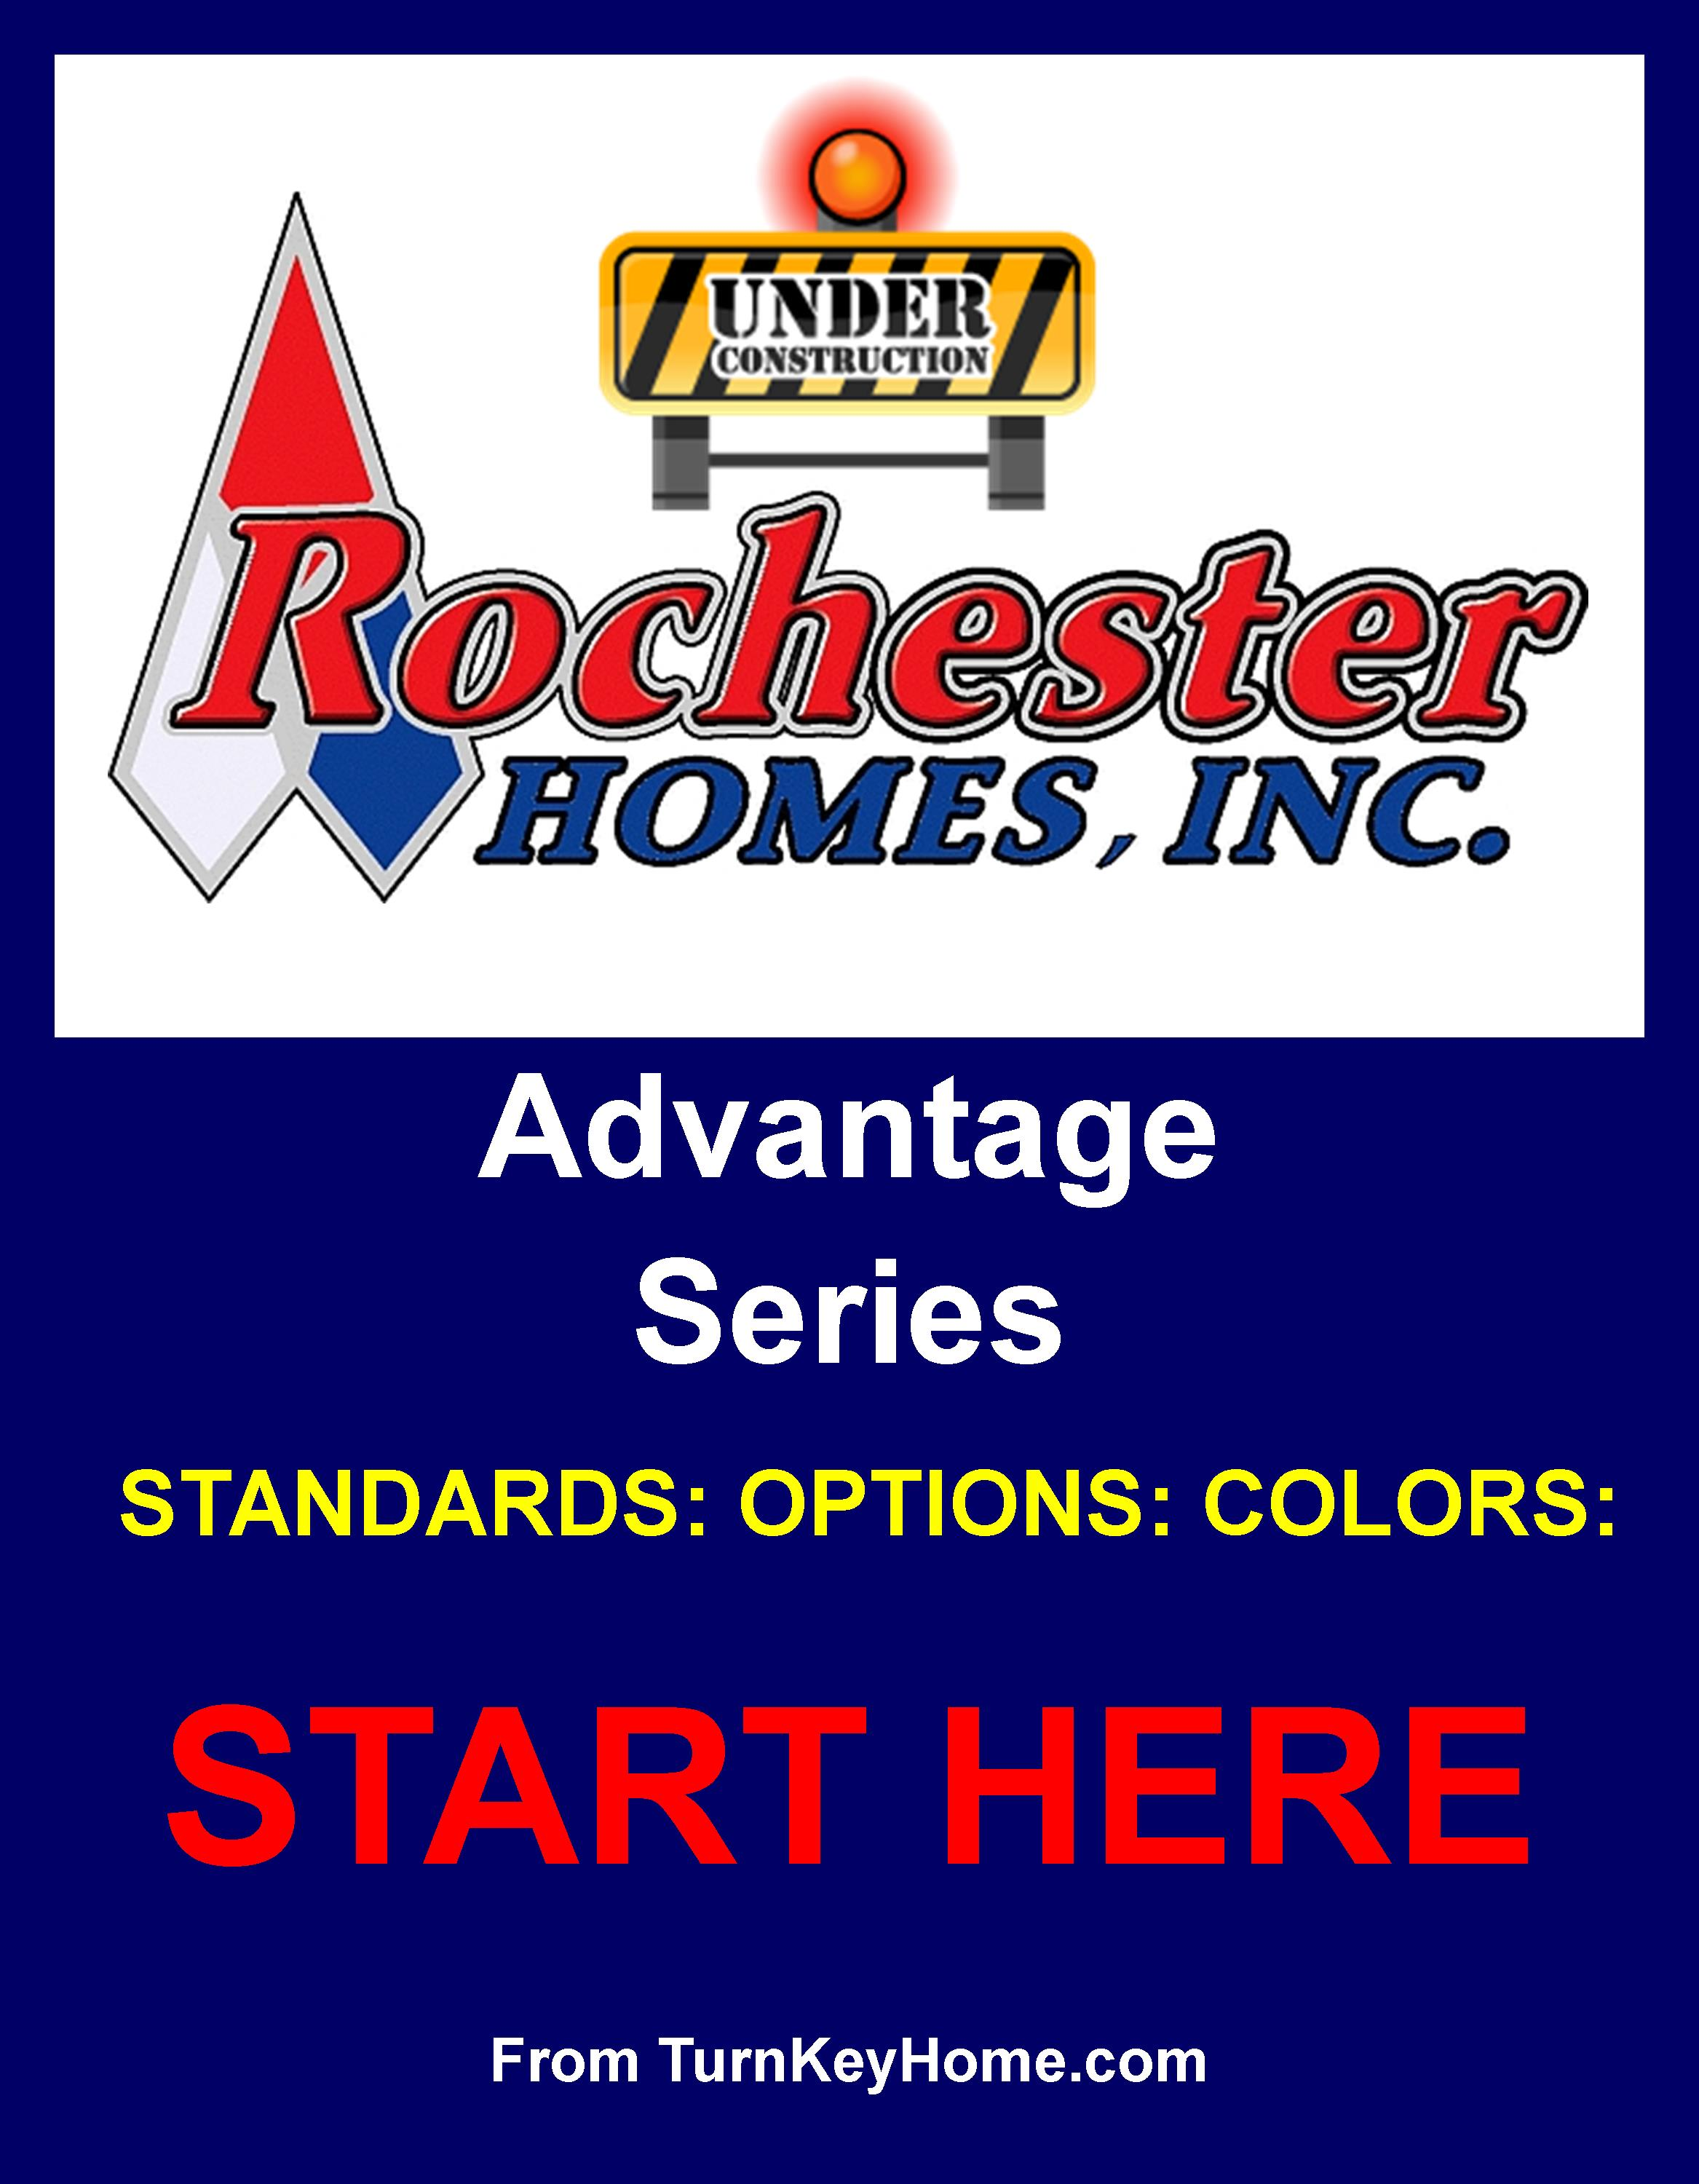 Rochester.Homes.AdventureSeries.Standards.Options.Colors.Product.Introduction.03.25.14.10x7